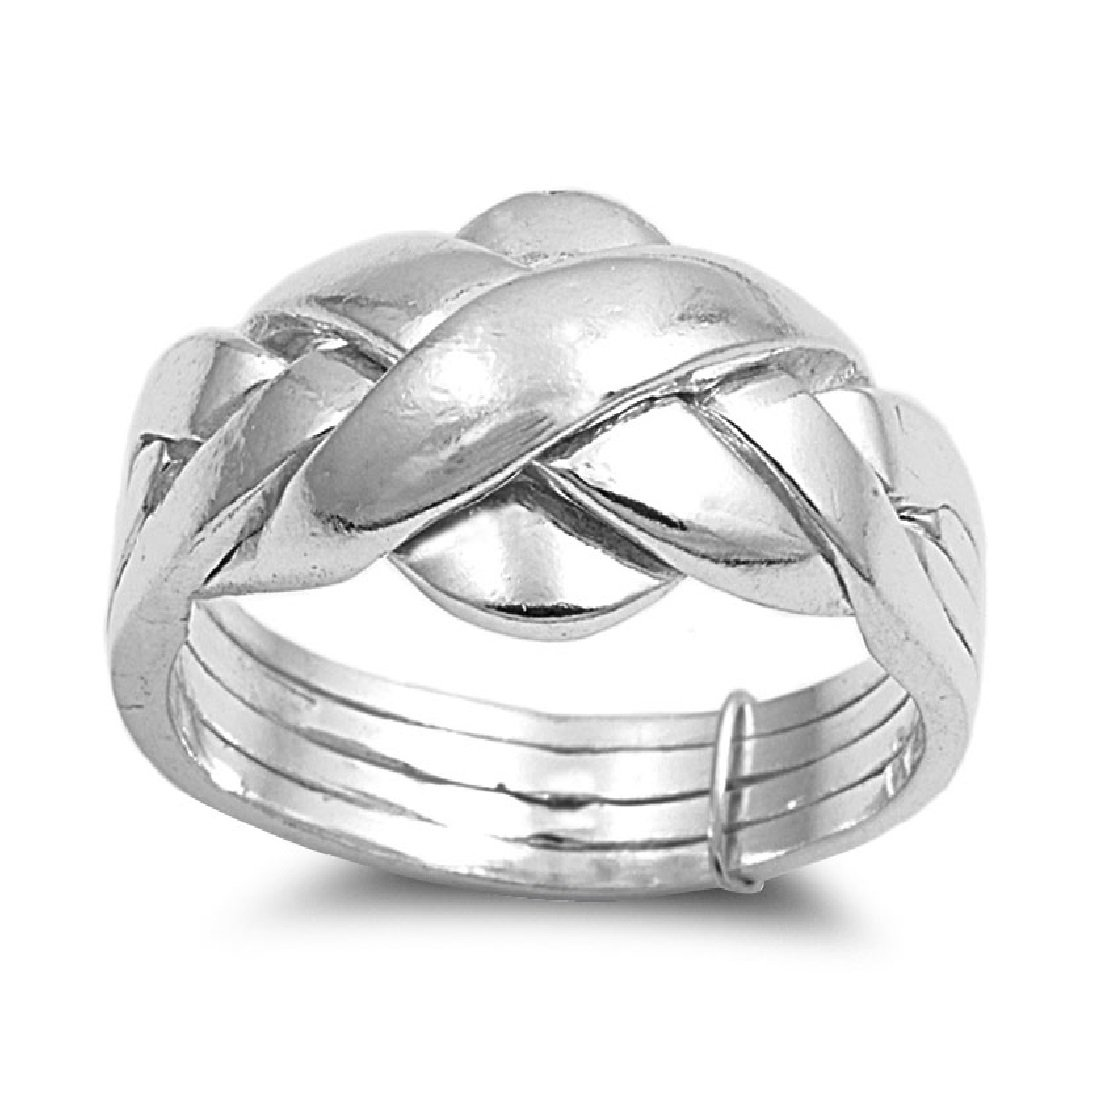 925 Sterling Silver Braided Puzzle Design Ring Size 8